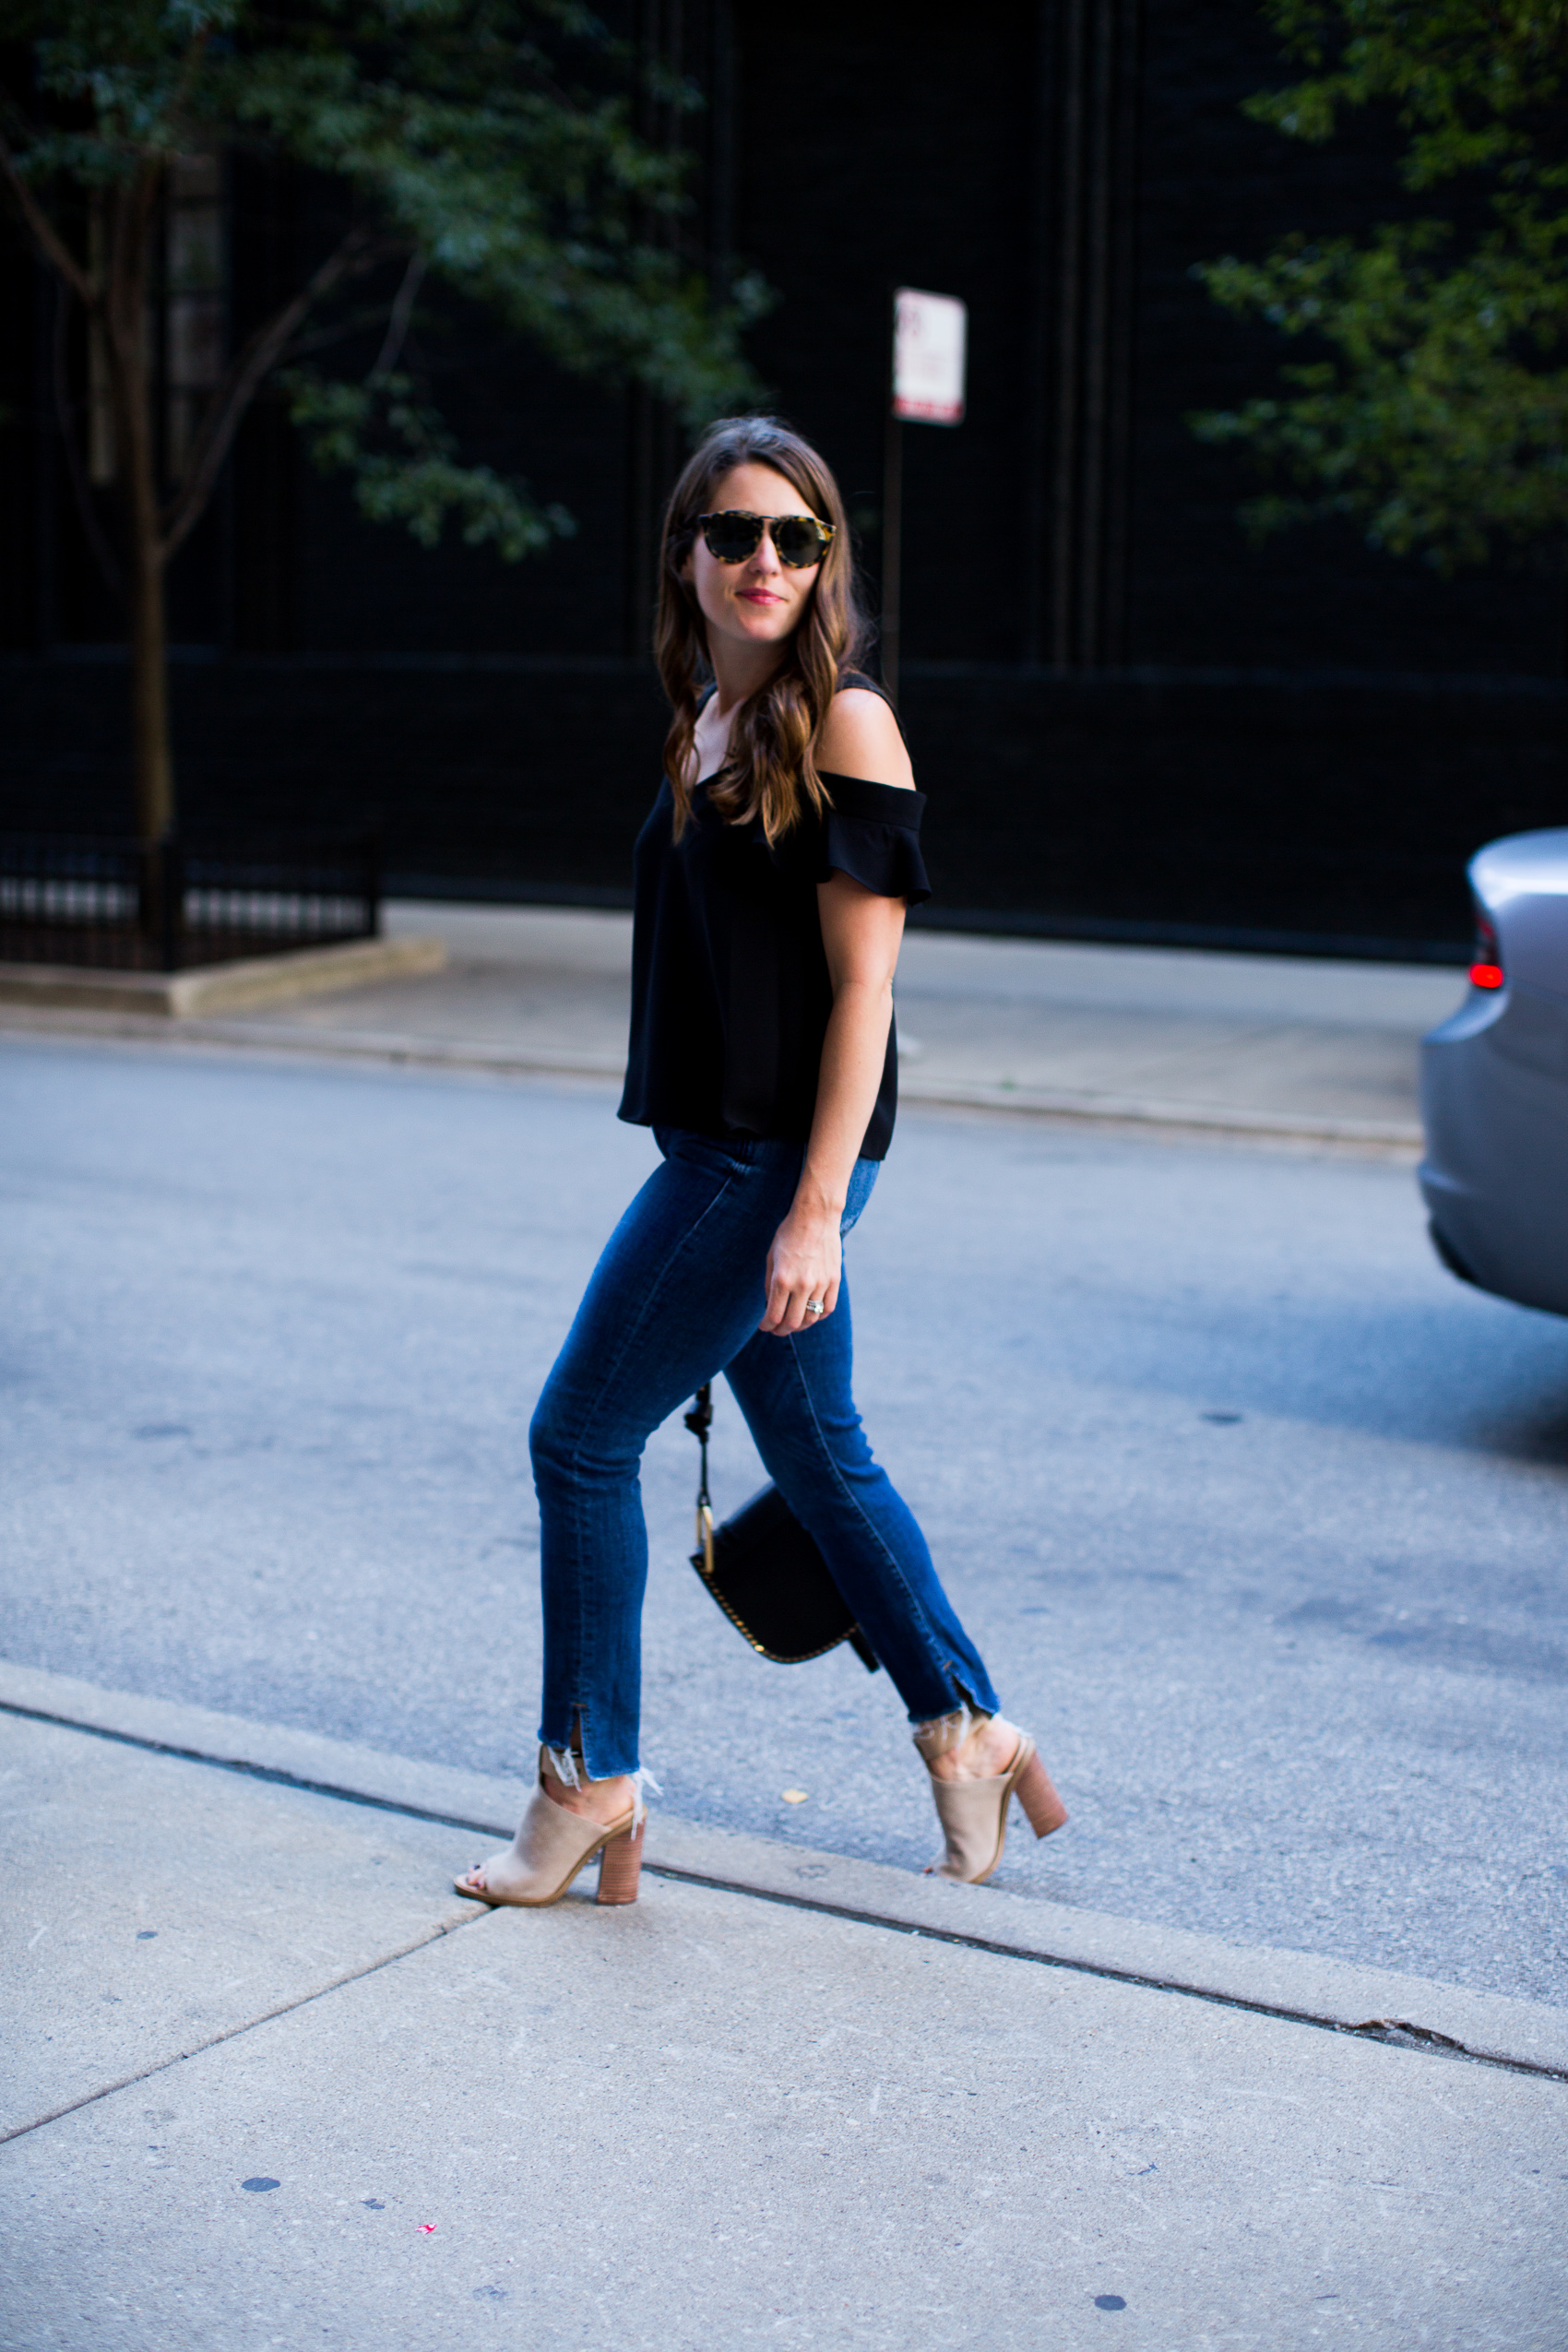 Chicago fashion blogger styles items for fall from Nordstrom